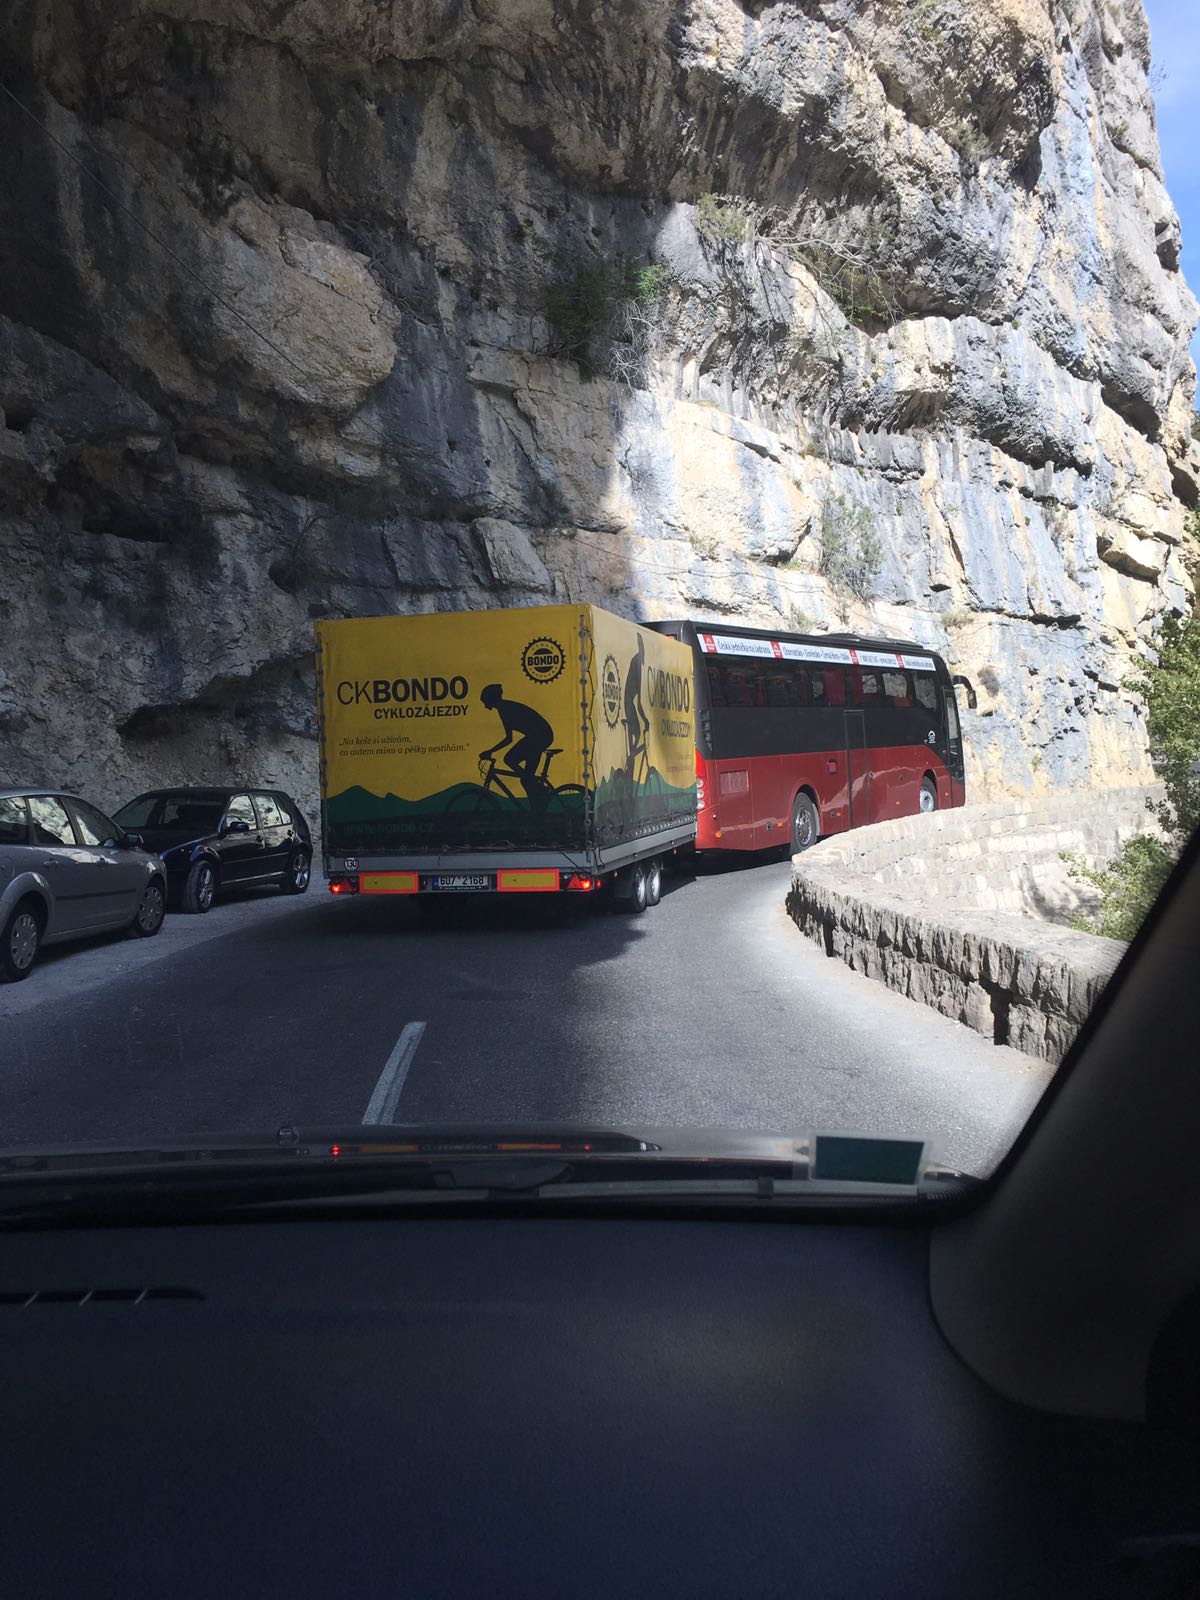 Czech cycling team's bus, ahead of our car on the road alongside the Gorges du Verdon